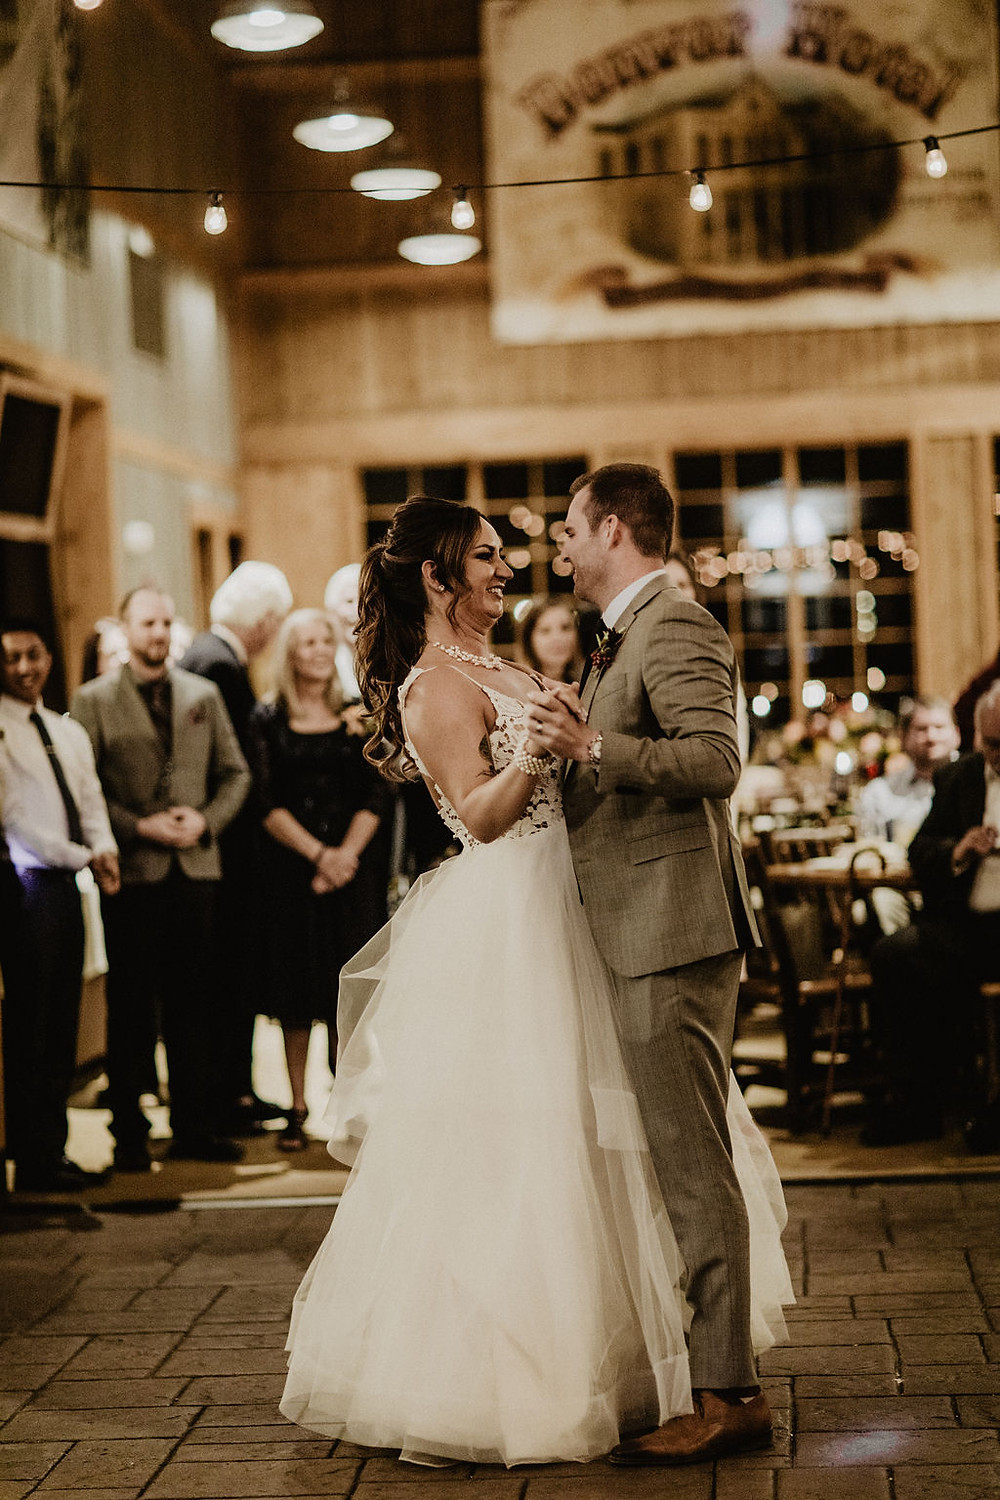 Ten Mile Station Wedding - Breckenride Wedding - First Dance